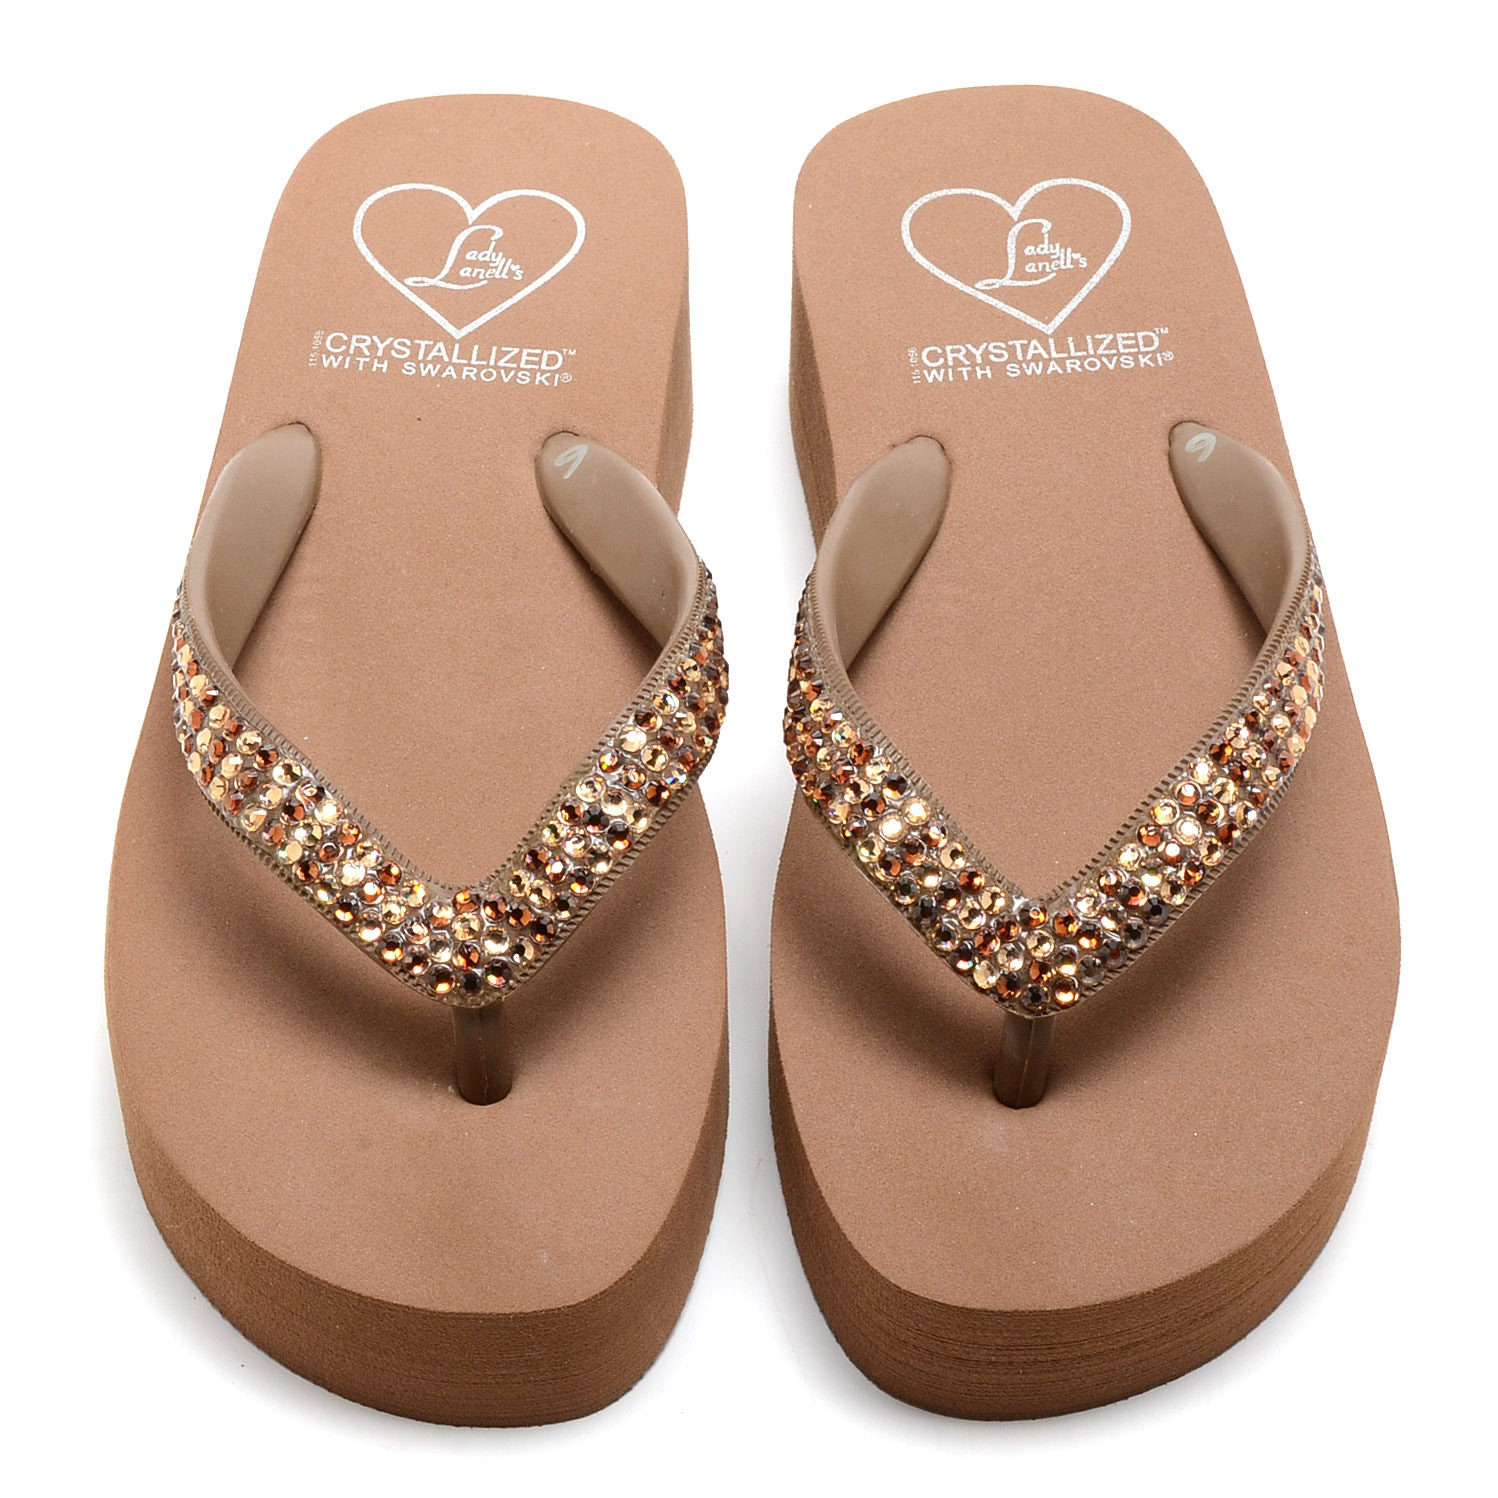 Lady Lanell's Platform Flip Flop Sandals Embellished with Swarovski Crystal Amber and Citrine Hued Rhinestones